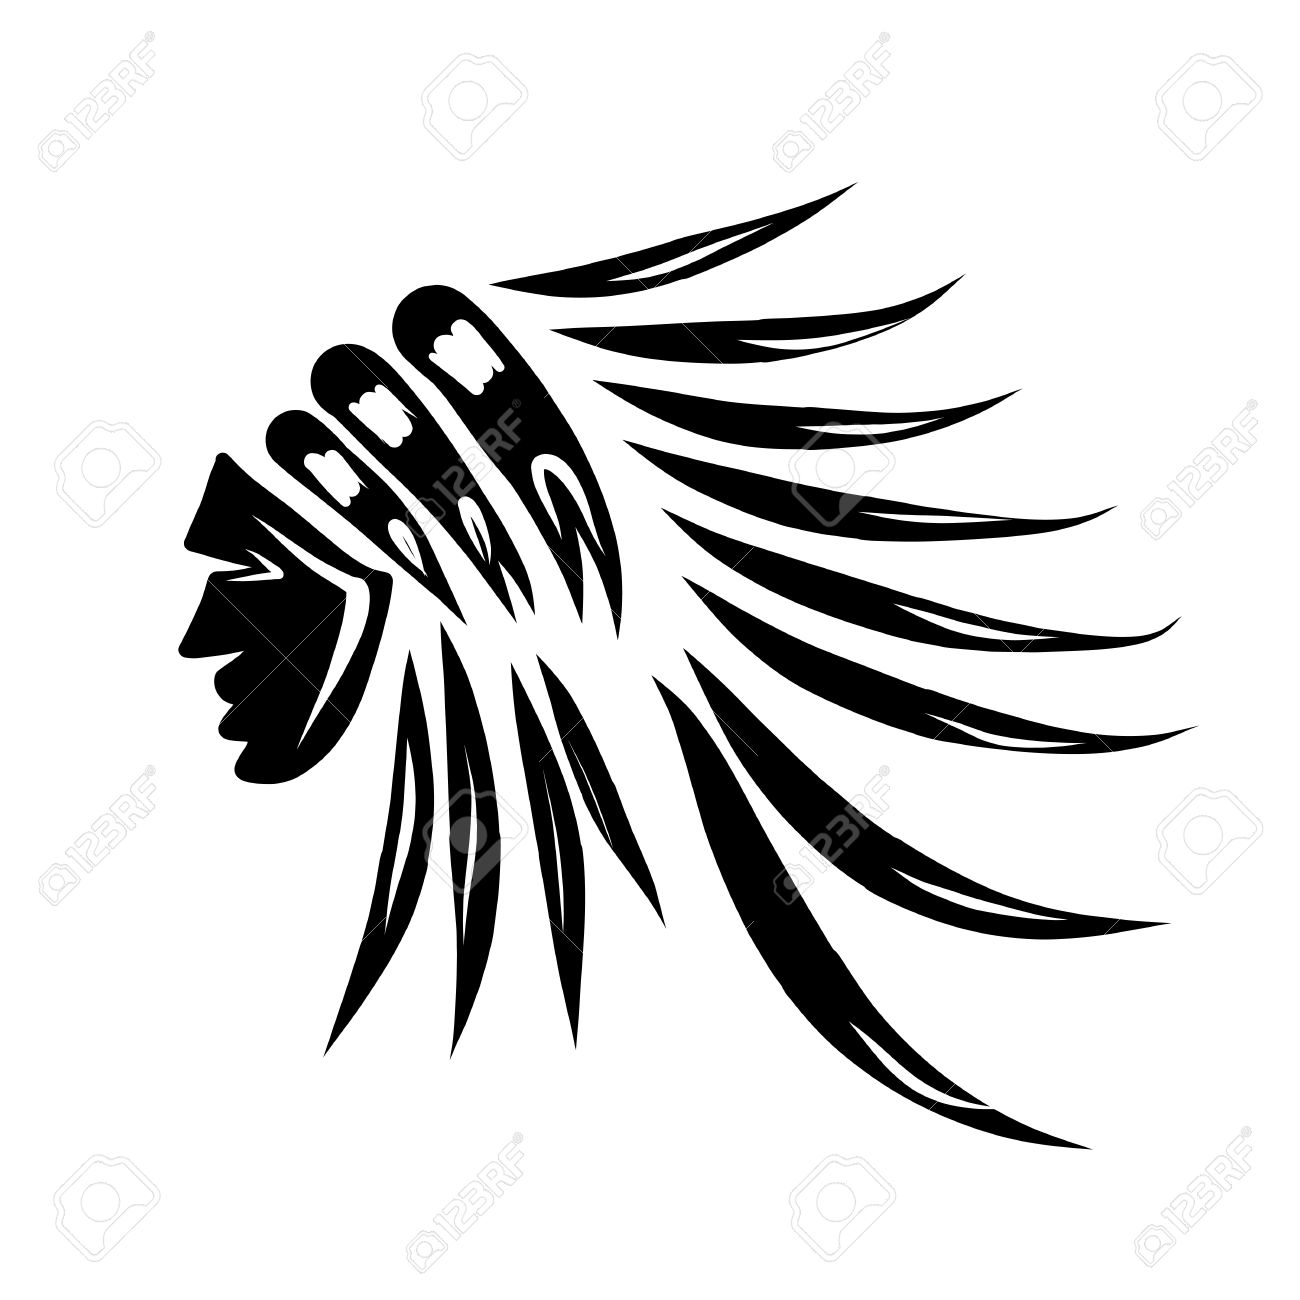 hight resolution of head of indian chief black silhouette for your design stock vector 30683250